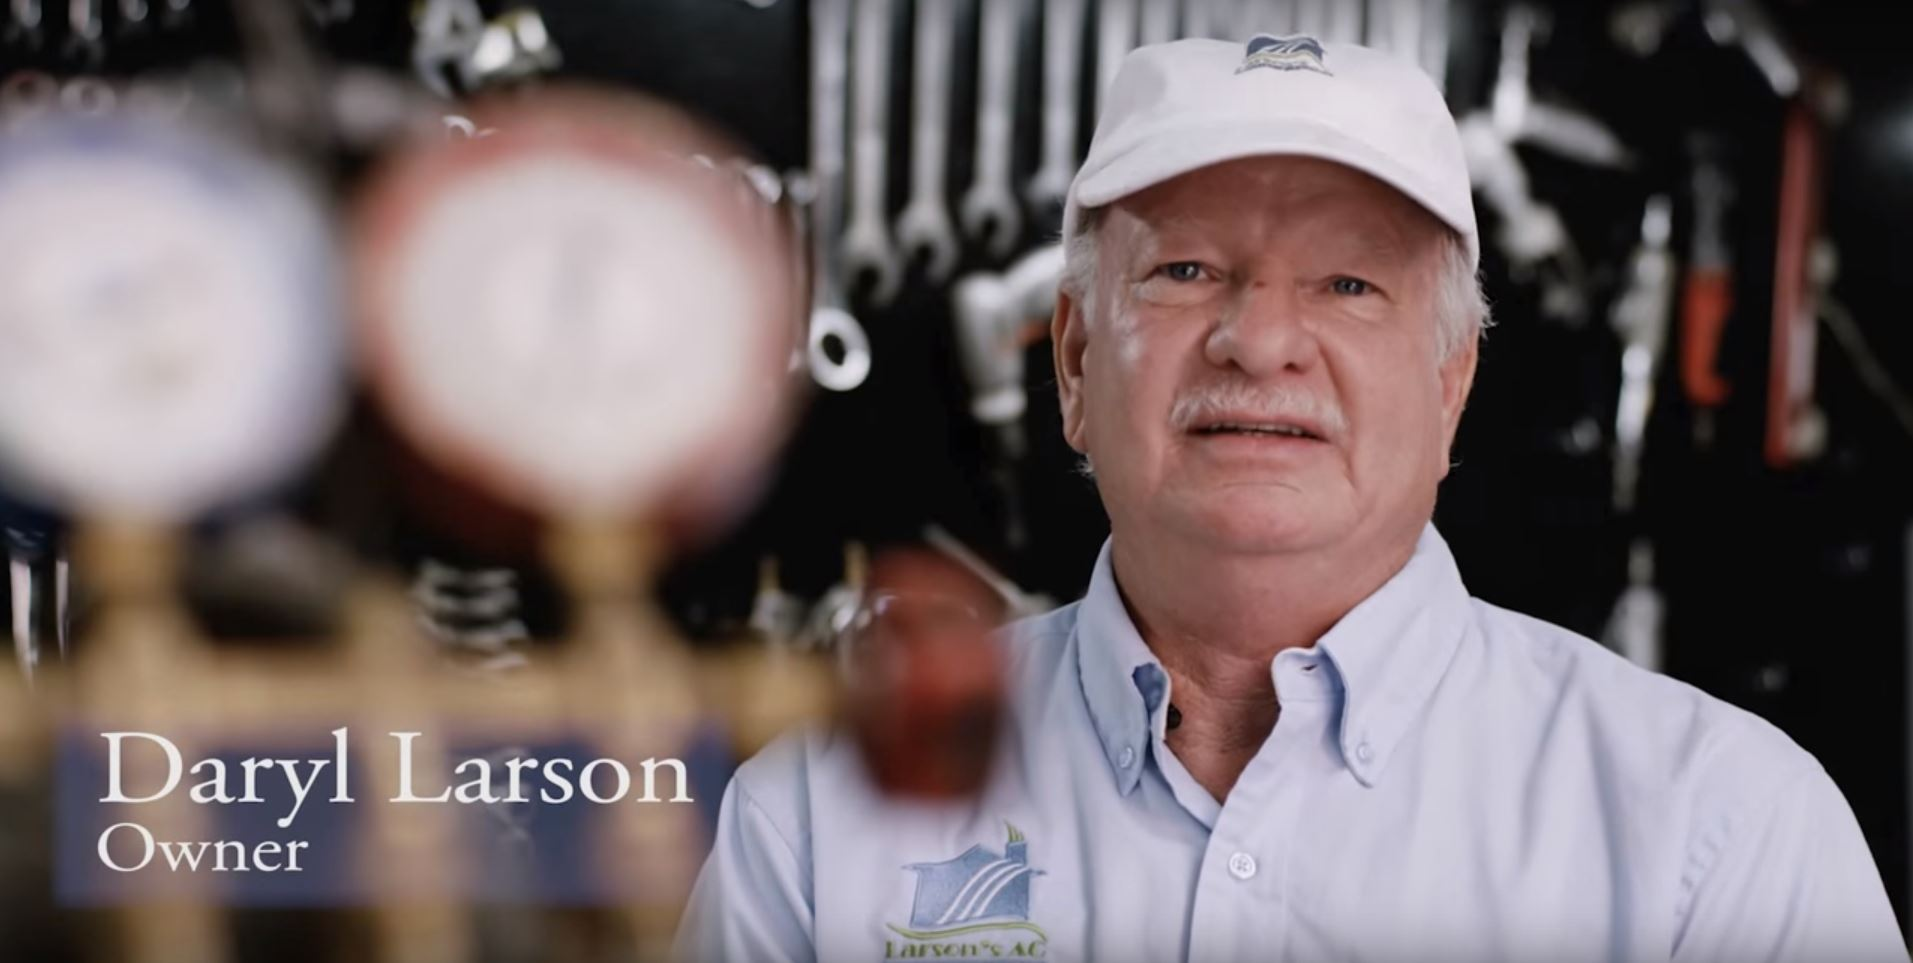 Larson Heating and Cooling